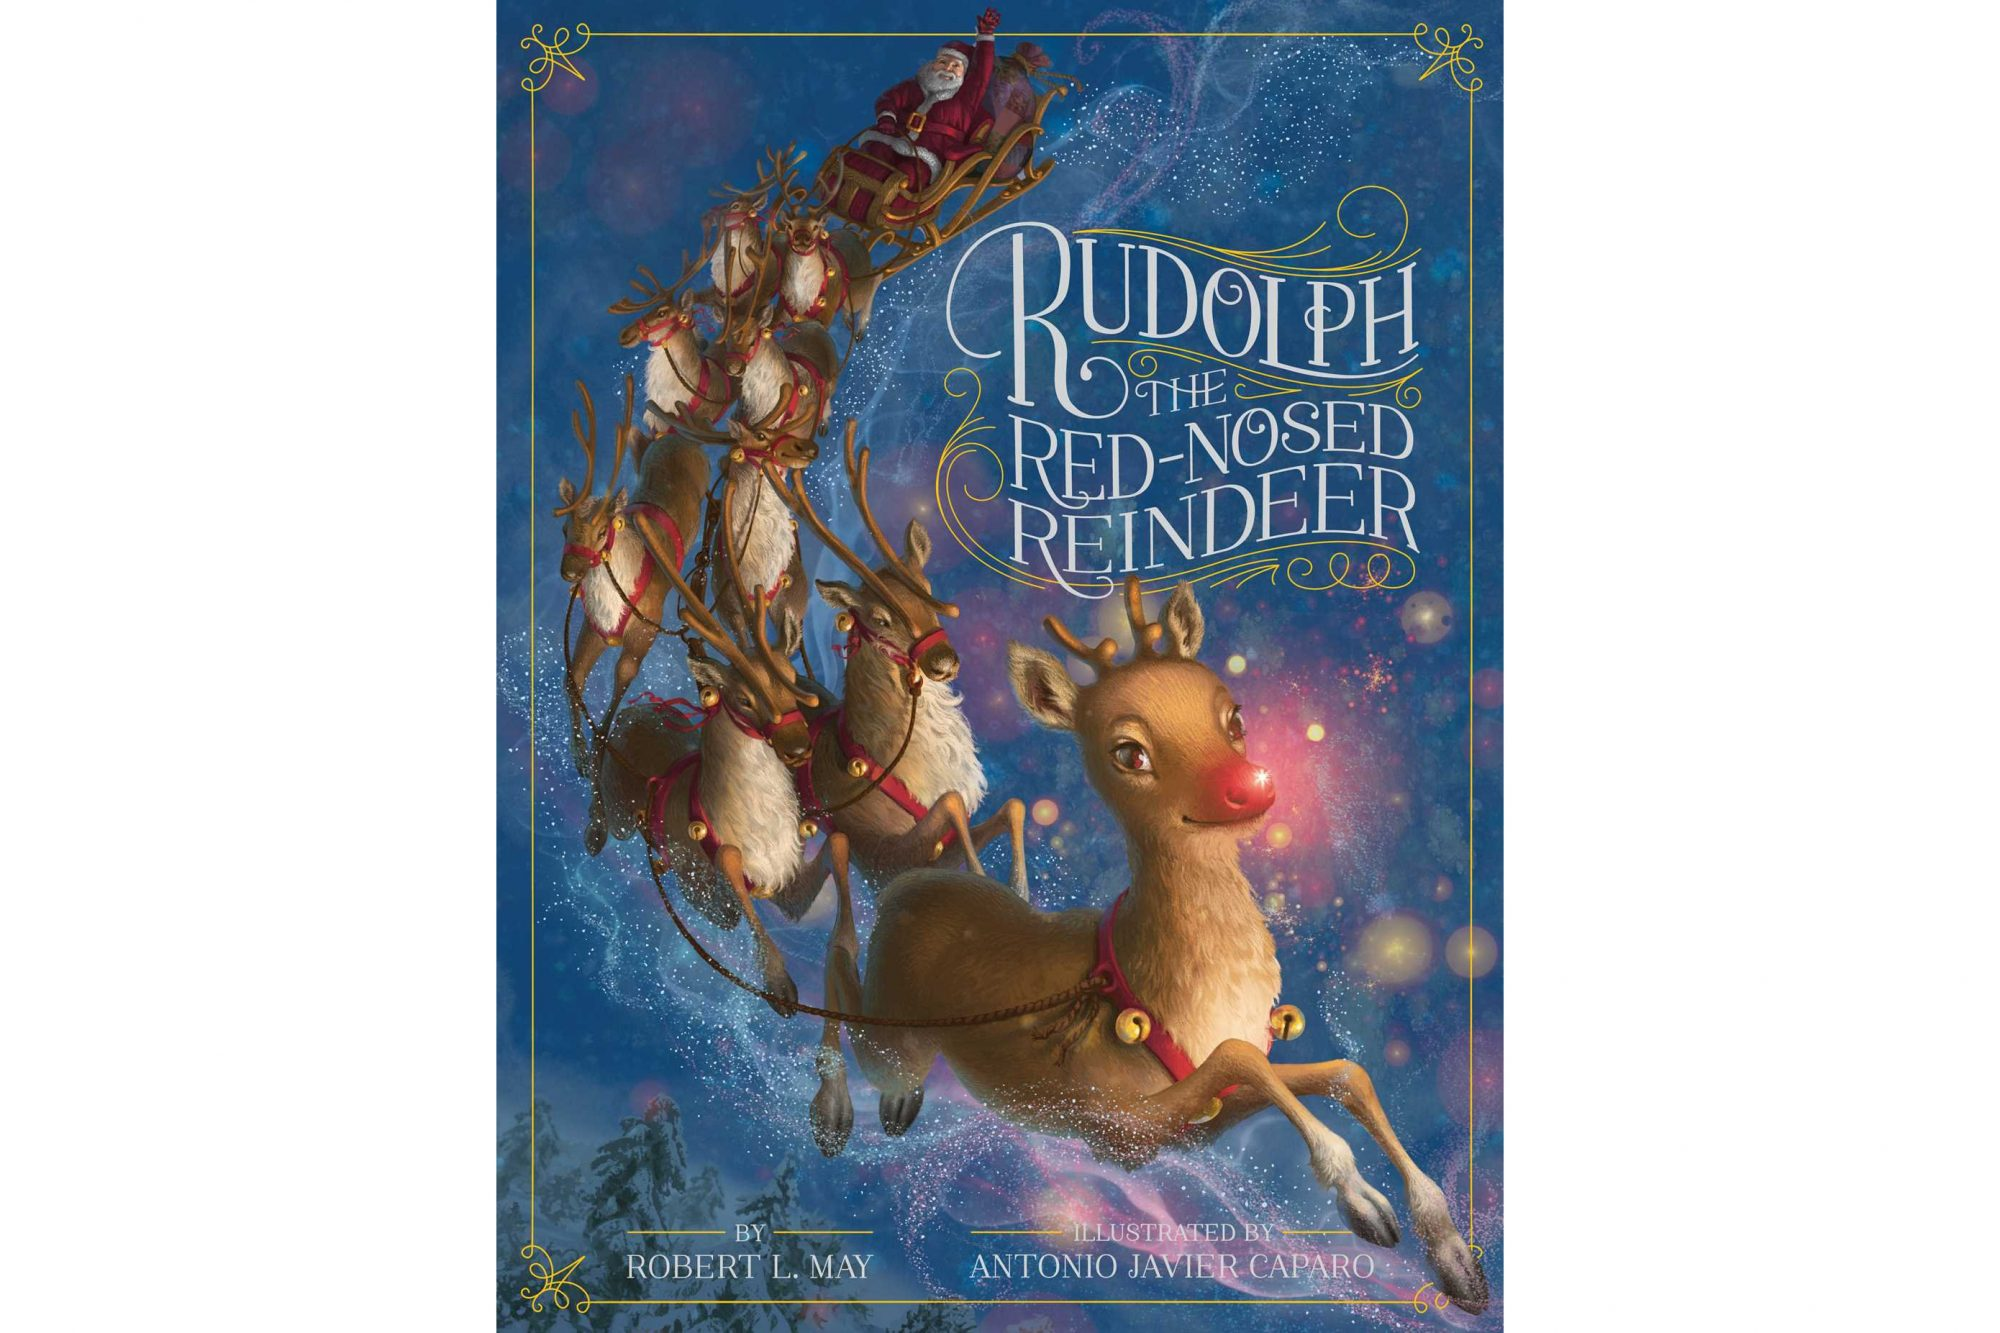 Christmas books for kids - Rudolph the Red-Nosed Reindeer, by Robert L. May